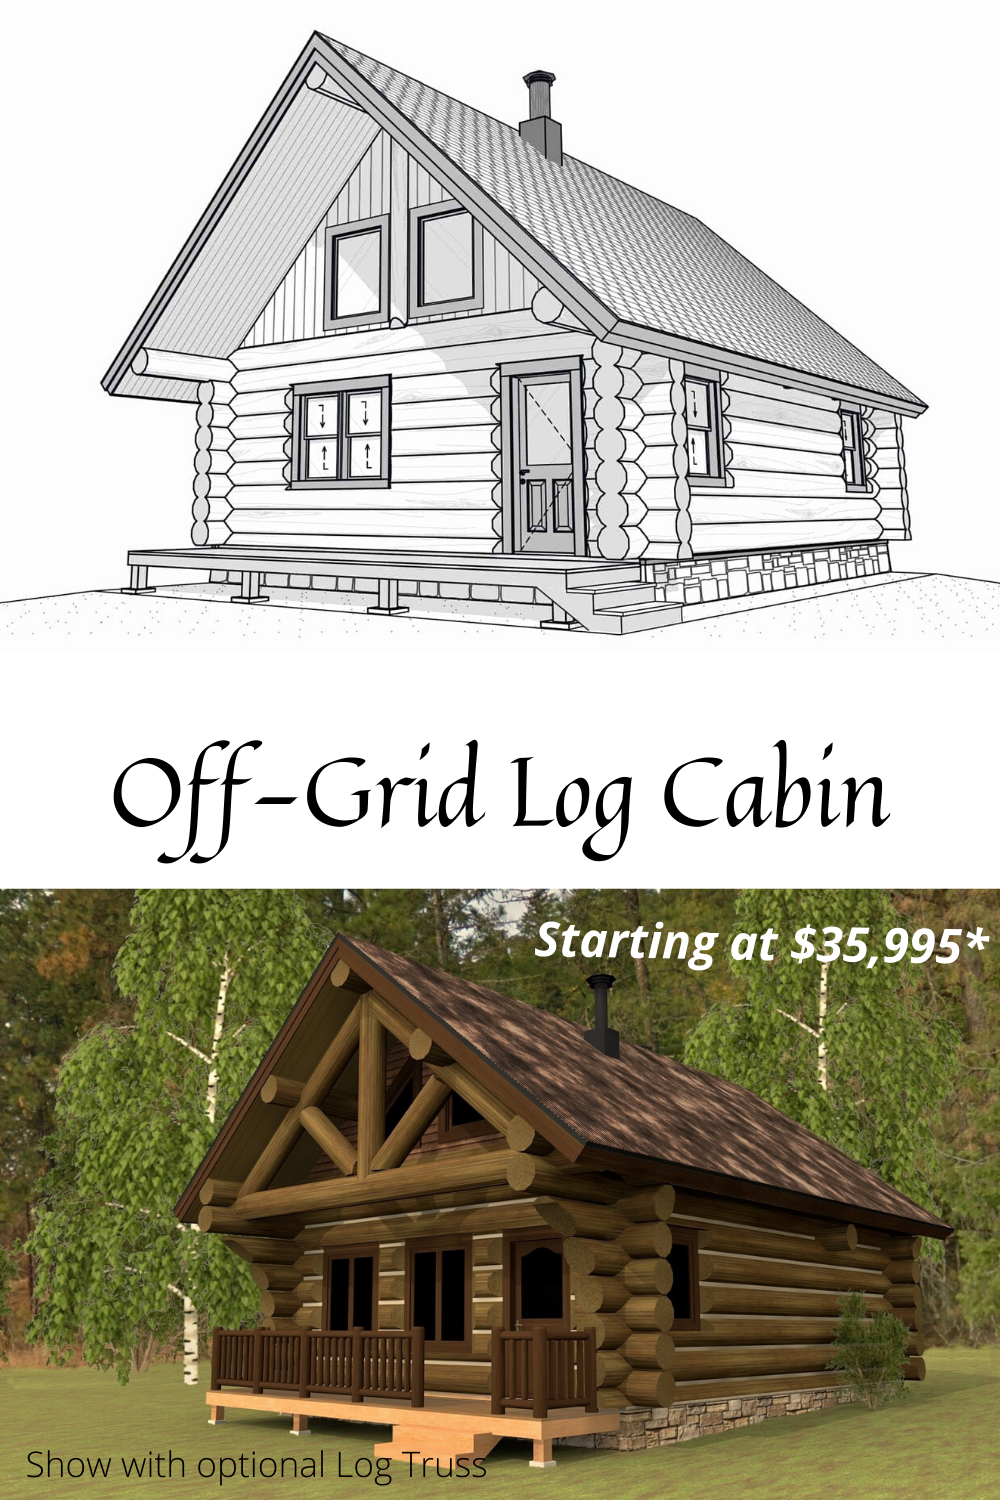 Best Off Grid Log Cabin Floor Plan For Small Budgetsbest Log Cabin Floor Plan For Small Budgets In 2020 Cabin Floor Plans Log Cabin Floor Plans Log Cabin Home Kits